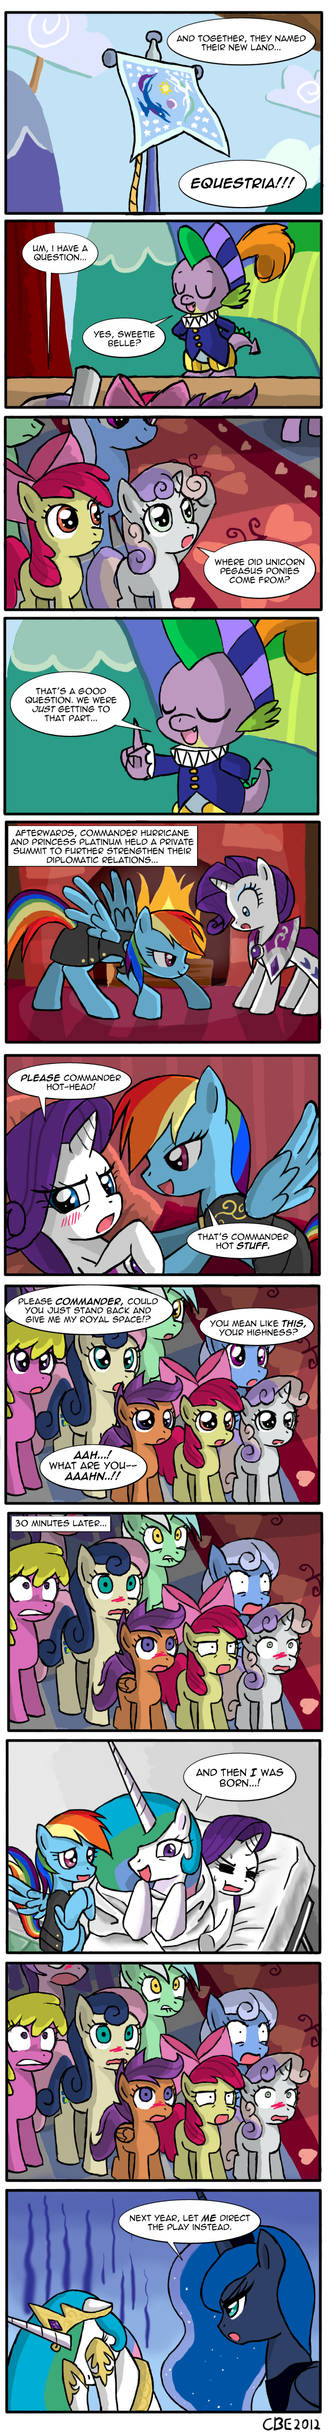 How Pinkie Pie got her cutie mark